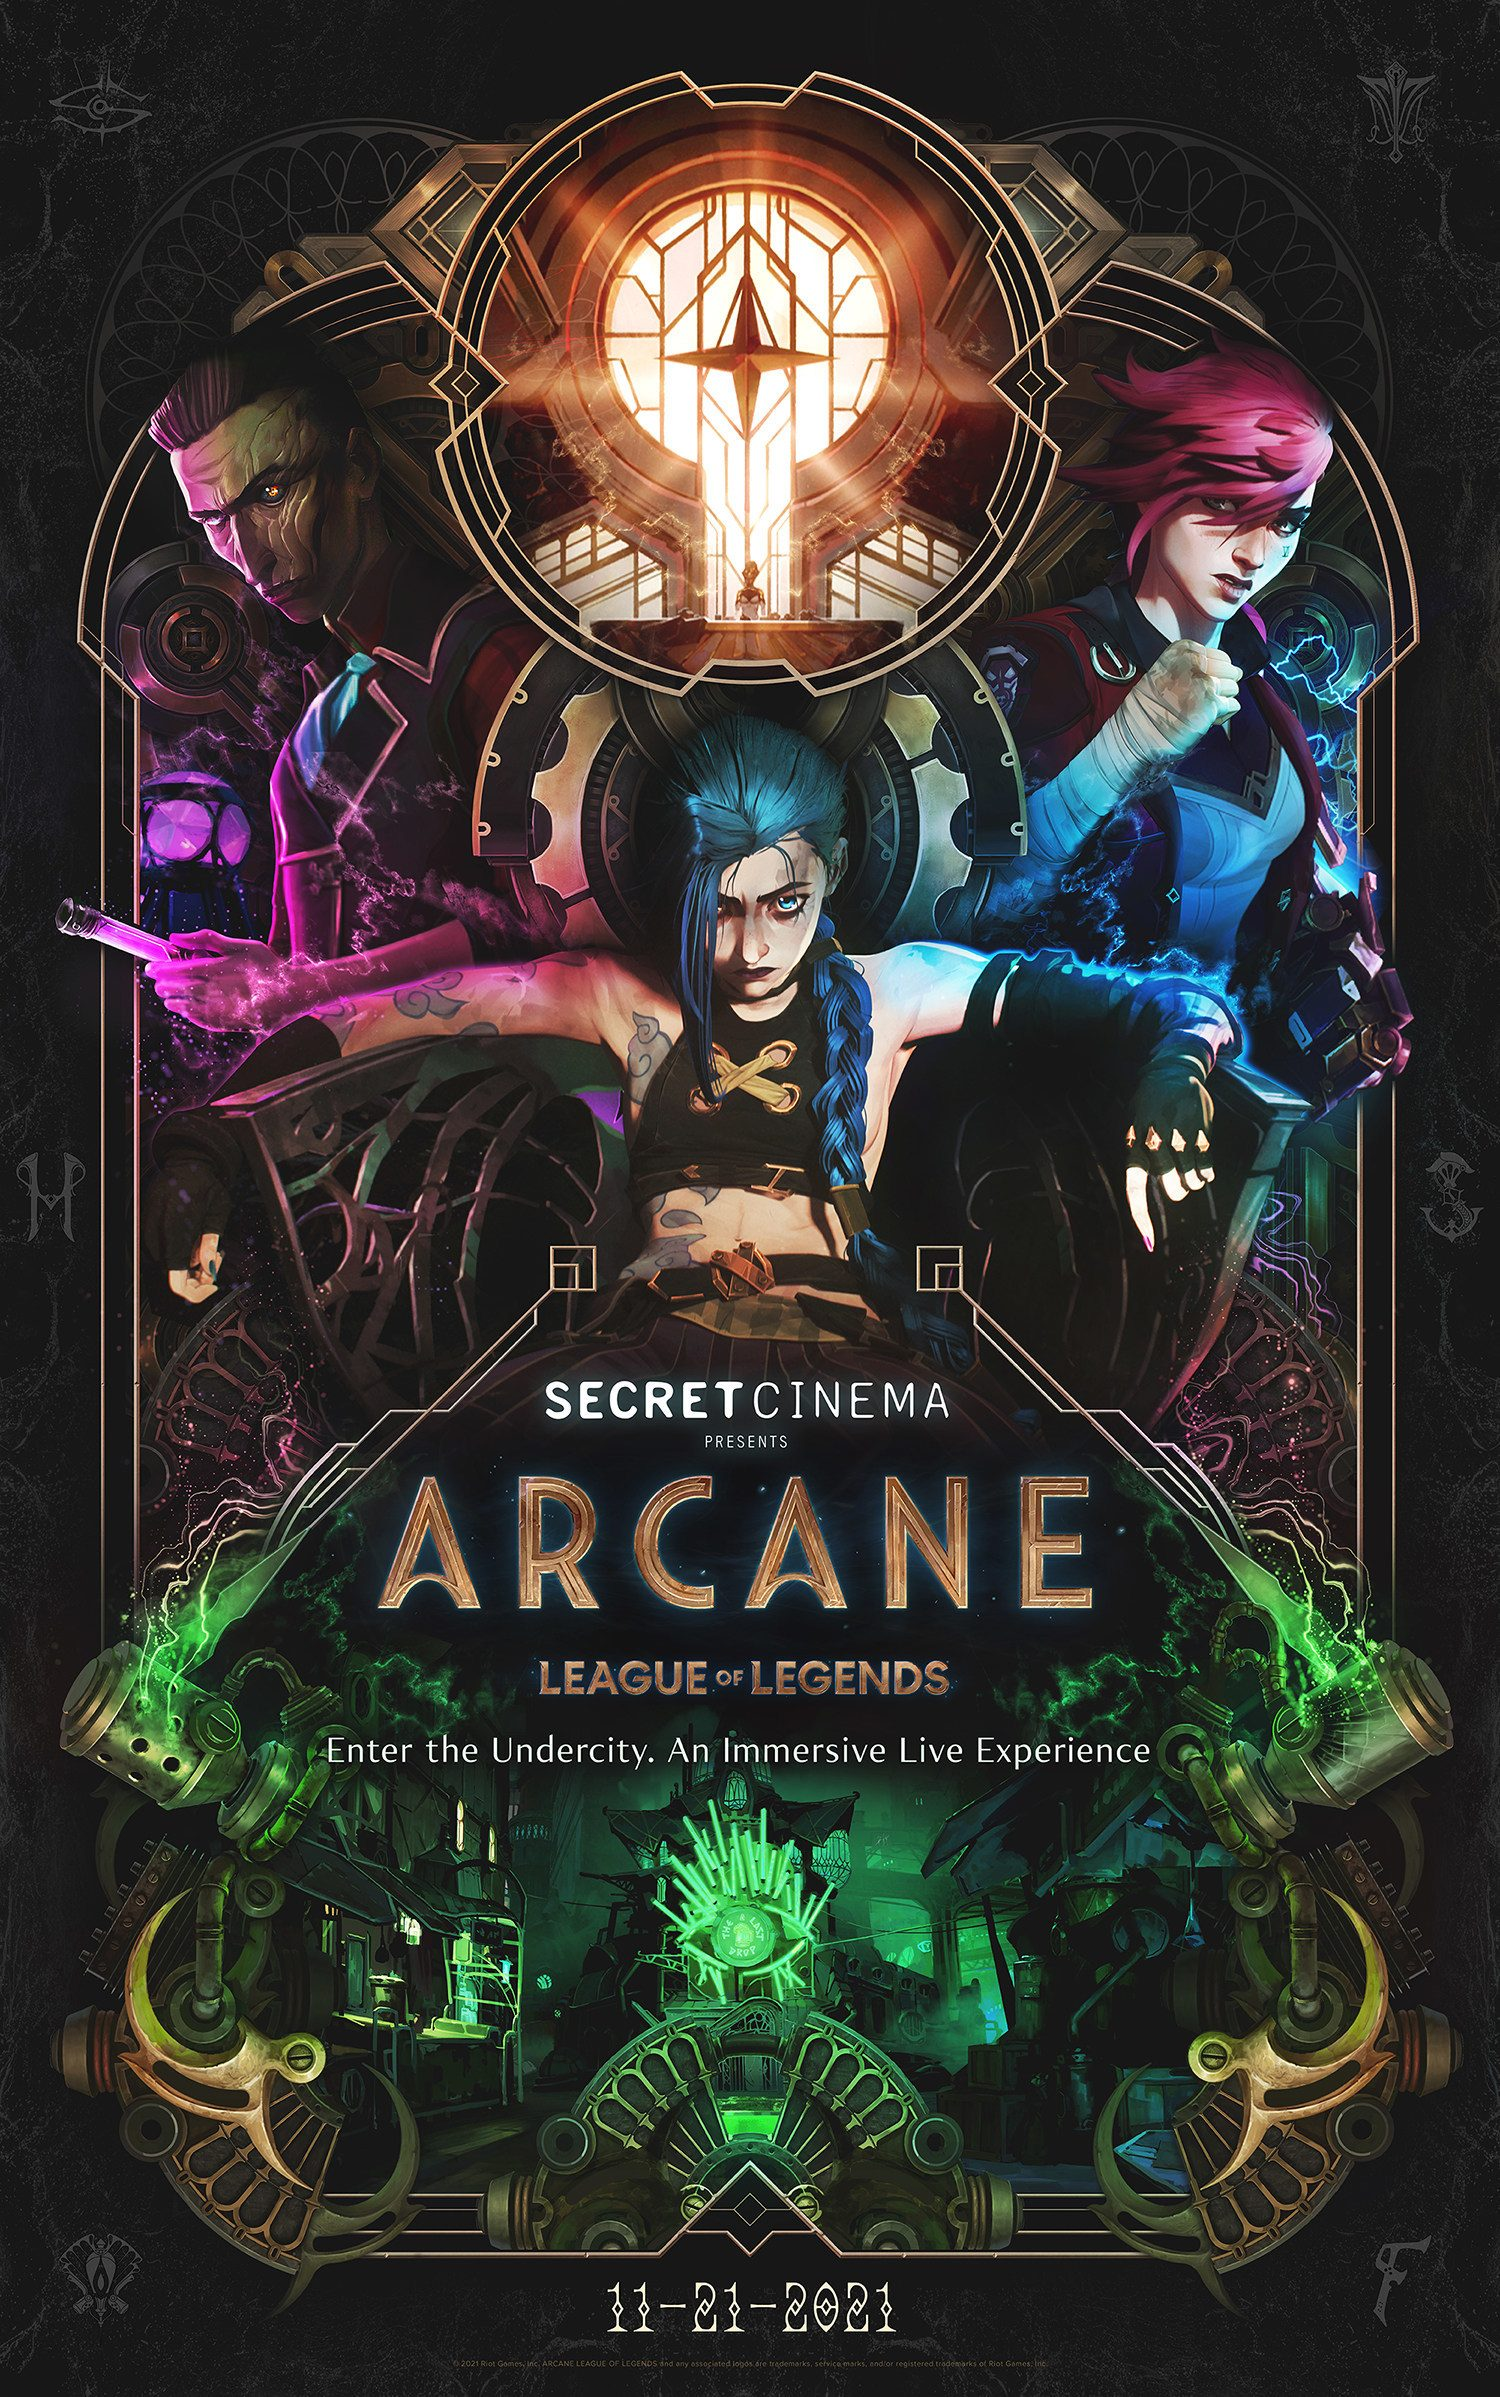 Riot Games & Secret Cinema Announce Real-Life Narrative Immersive Experience For League Of Legends Animated Series Arcane